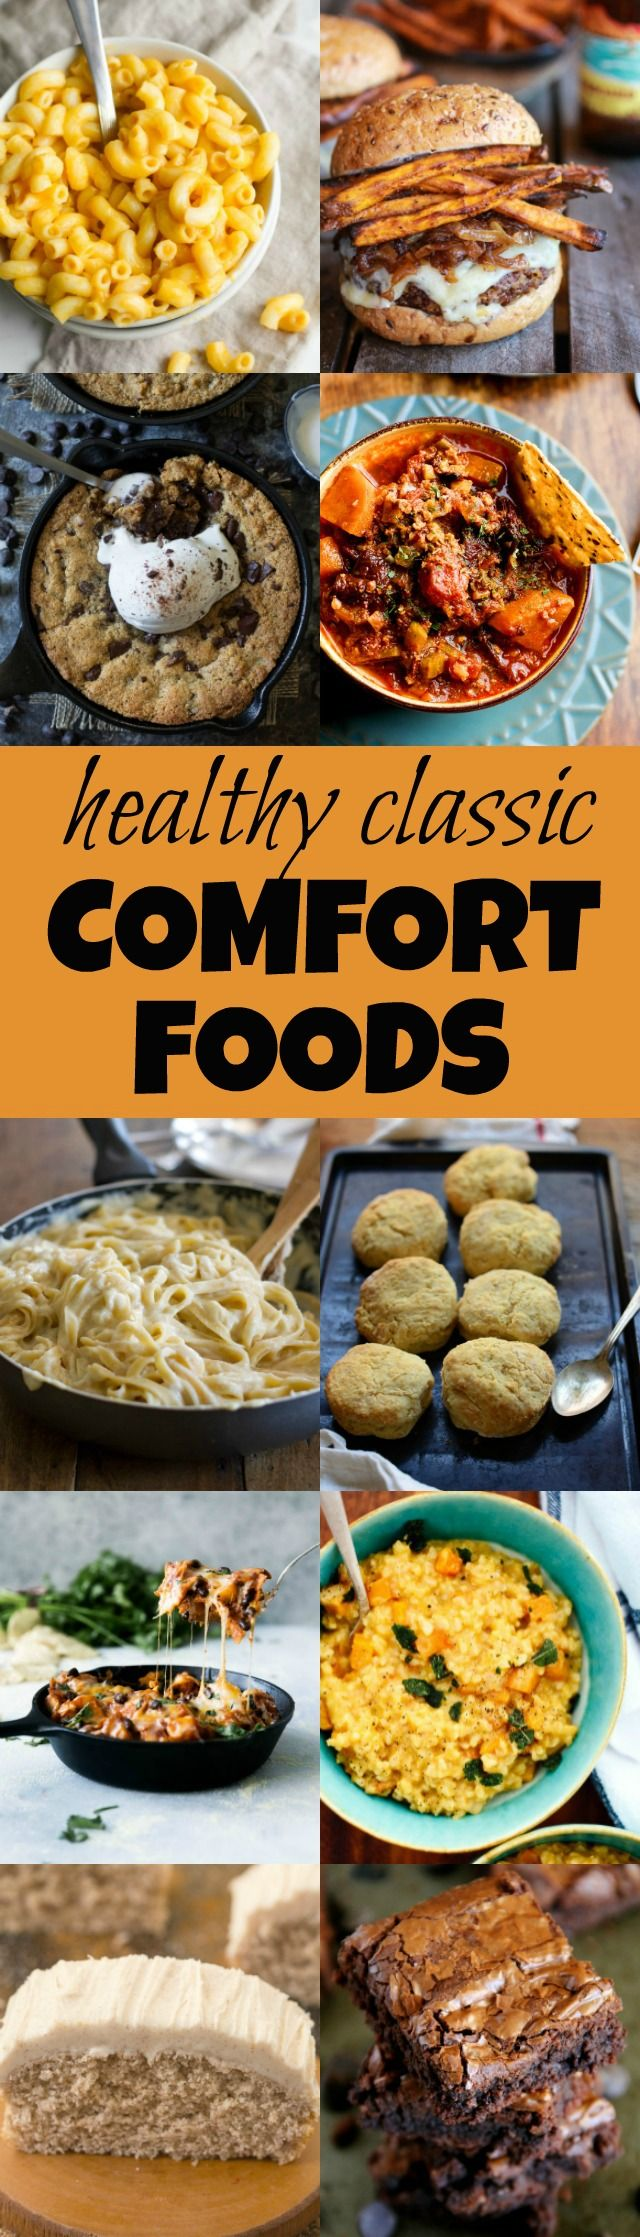 Eating healthy doesn't mean saying goodbye to your favourite comfort foods! These healthier versions of all the classics are great for both the body and soul | runningwithspoons.com